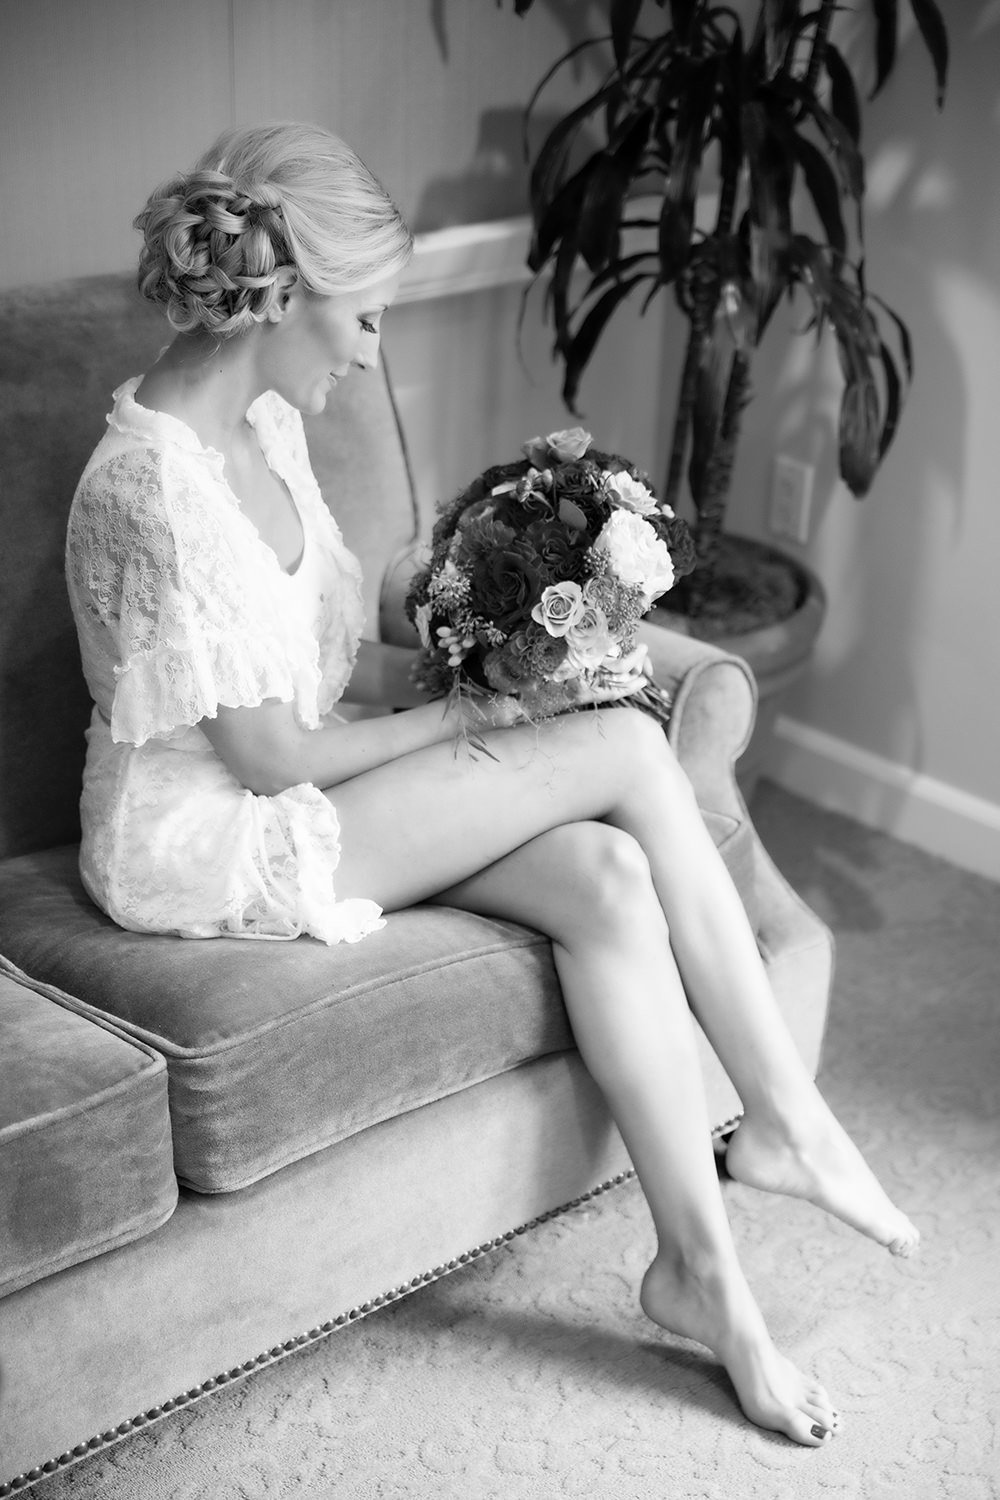 Elegant moment captured in black and white of a bride getting ready